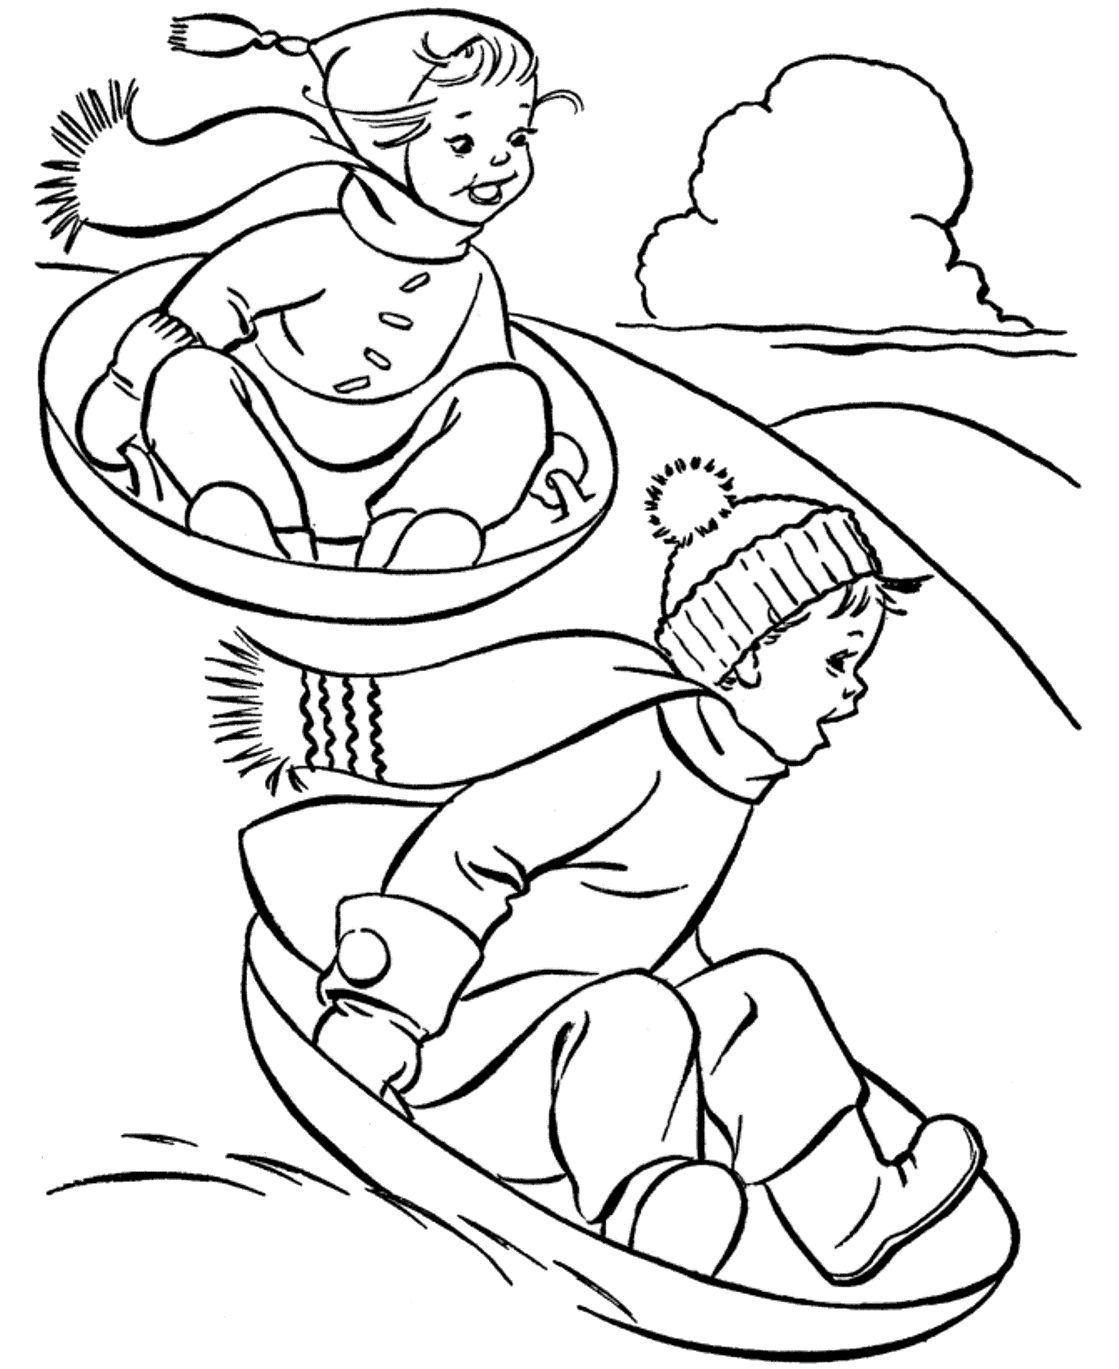 children christmas coloring pages - photo#20